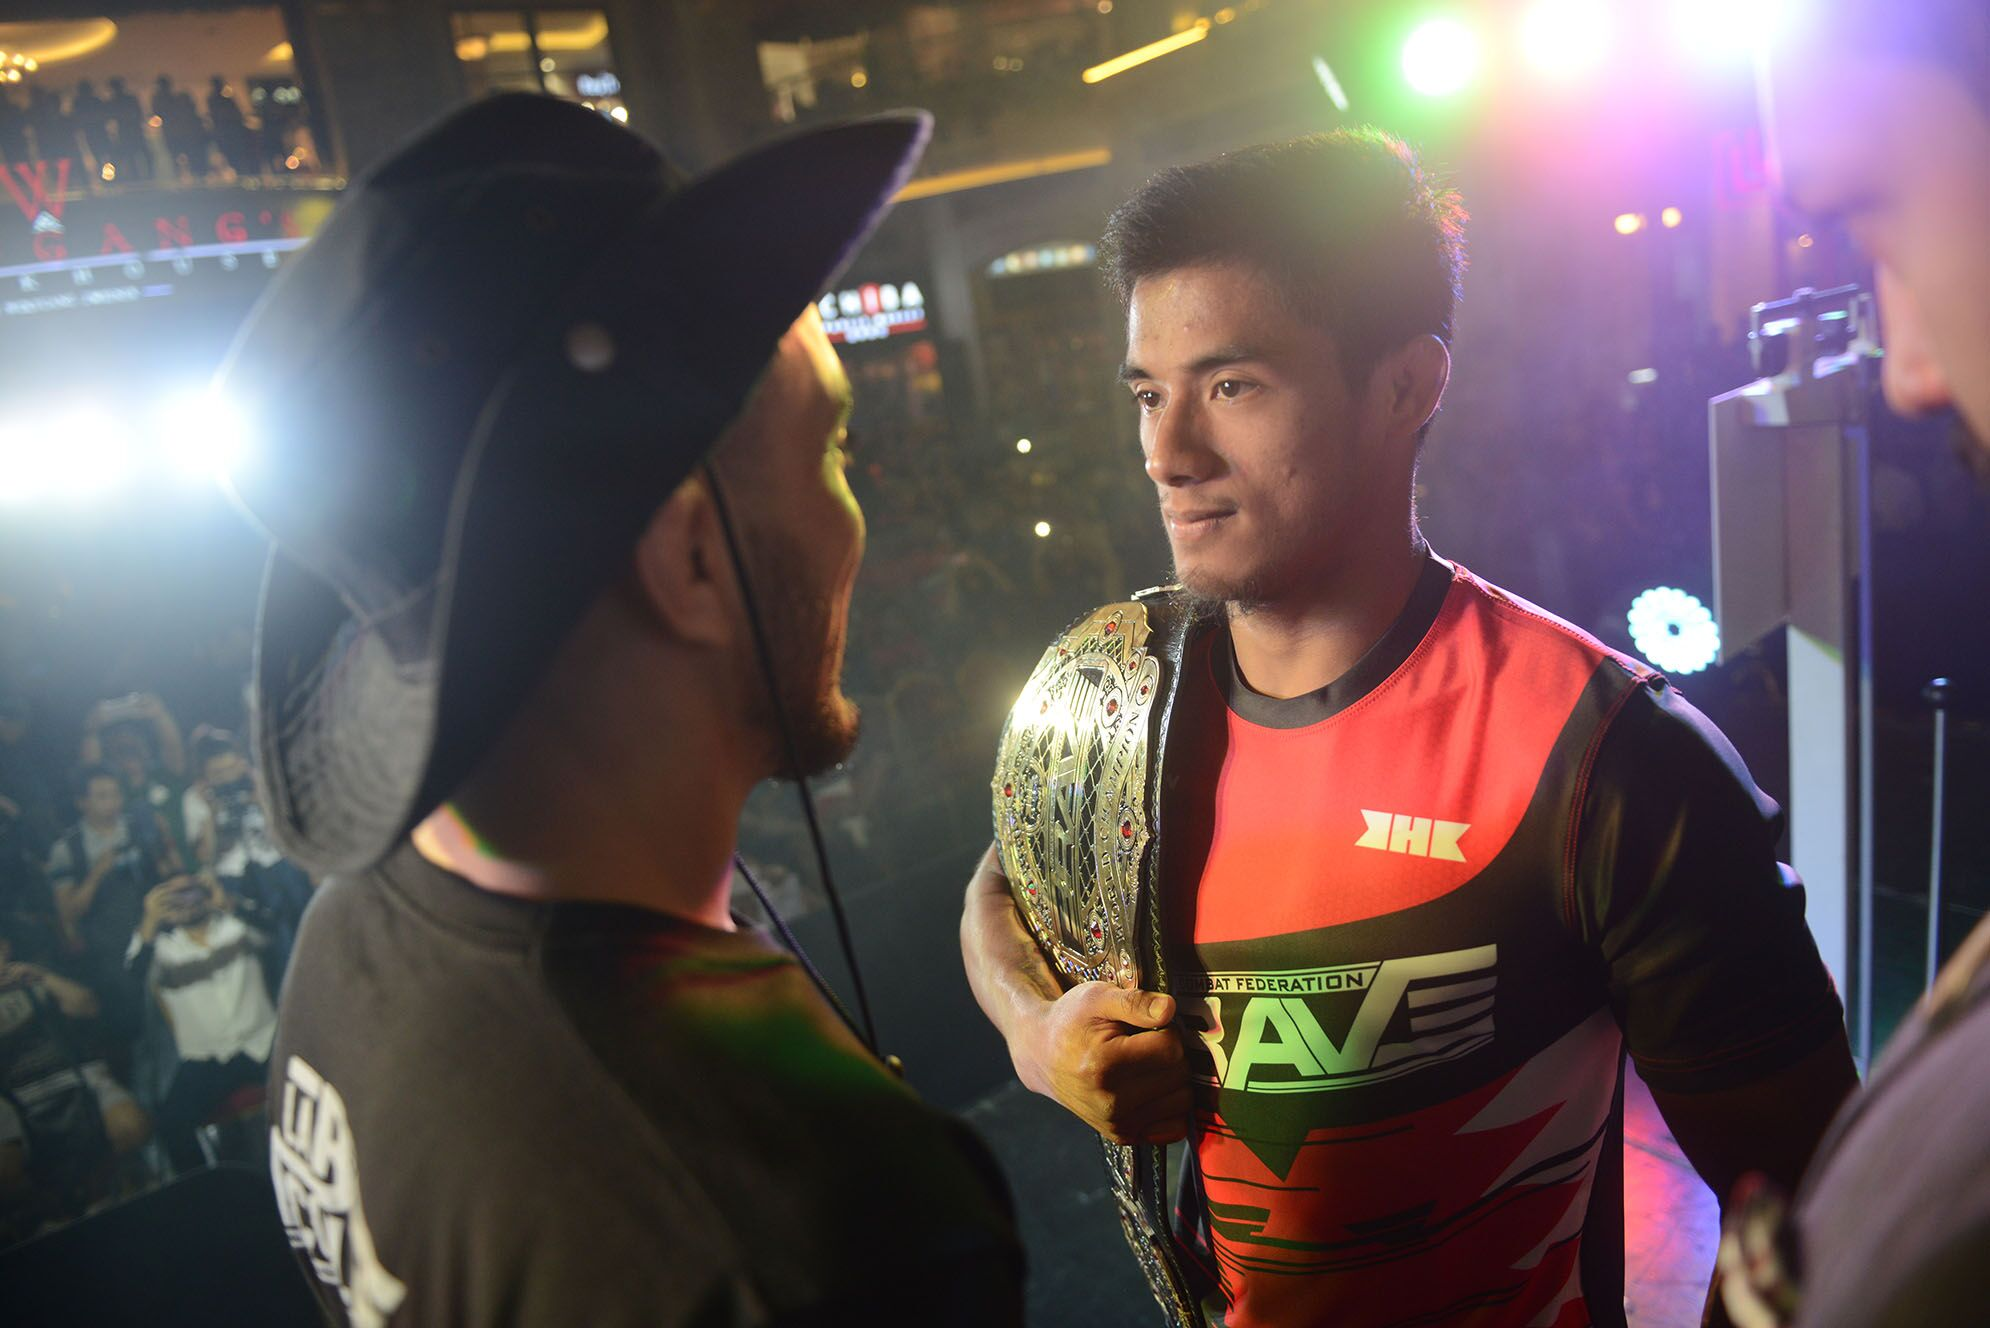 Brave 22 weigh-ins wrapped up with intense staredowns and missed weights -